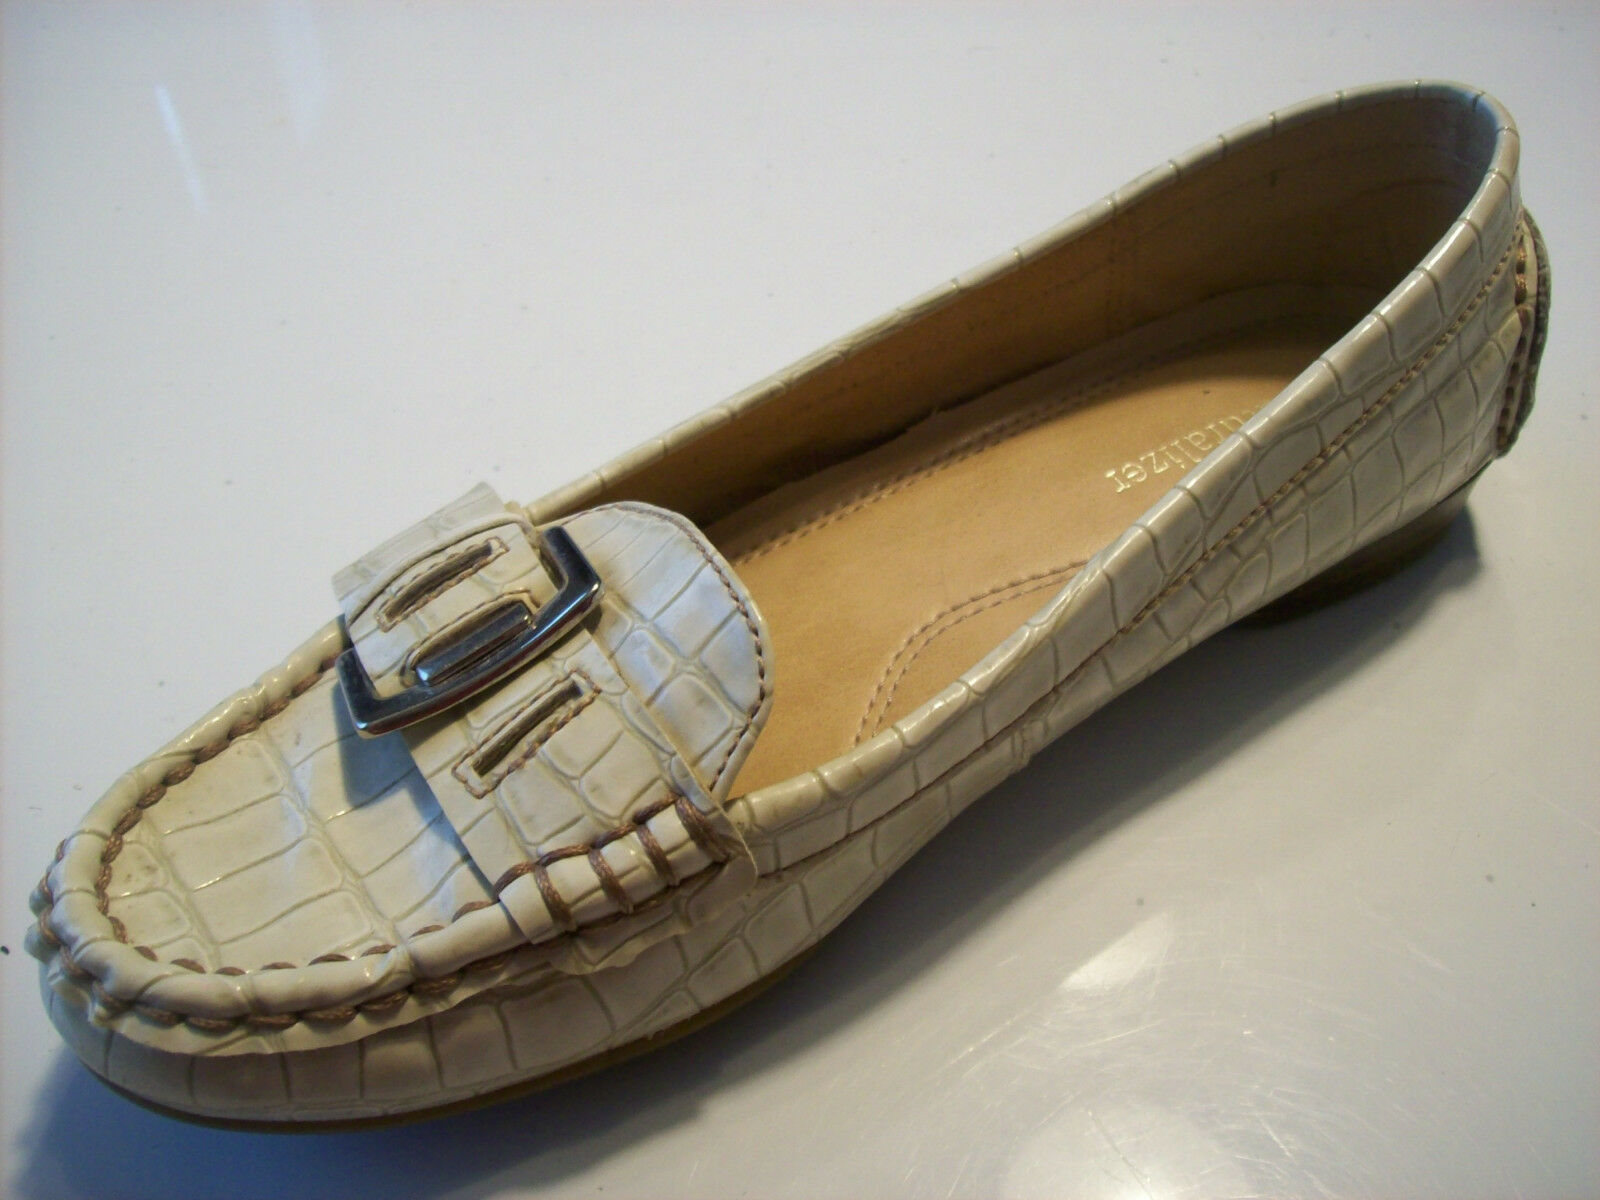 Naturalizer Heaven Ivory Shoes Tan Patent Leather Buckled Flats Loafers Shoes Ivory Size 6.5 1e8ace